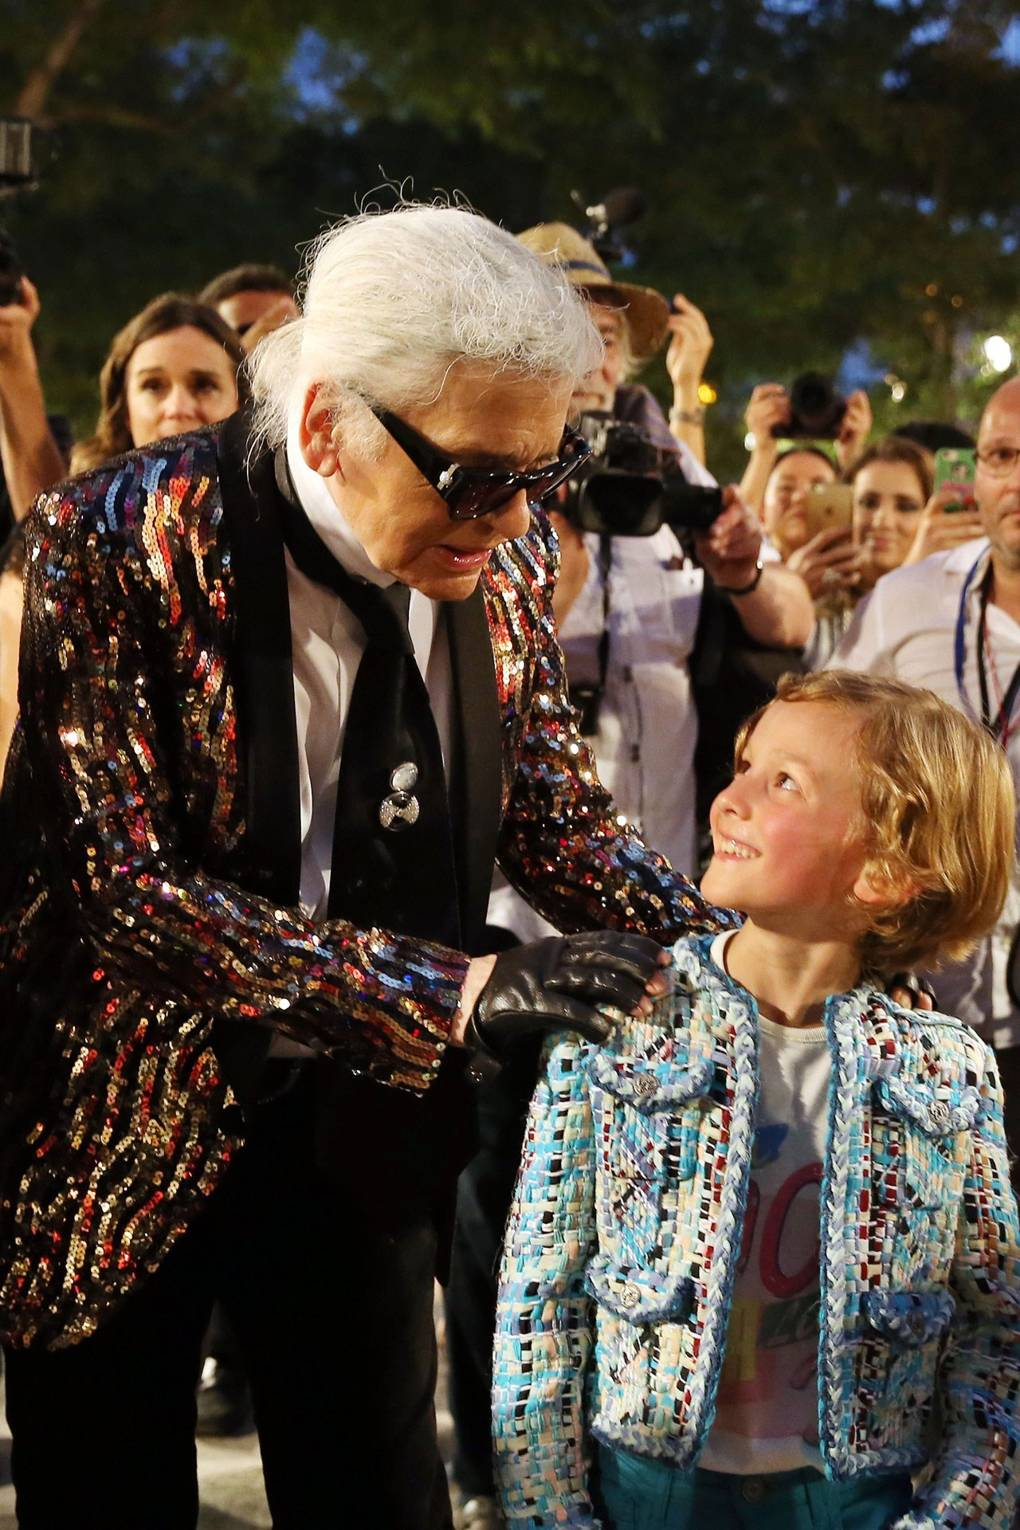 ba1d94f821 Karl Lagerfeld  Life in Pictures